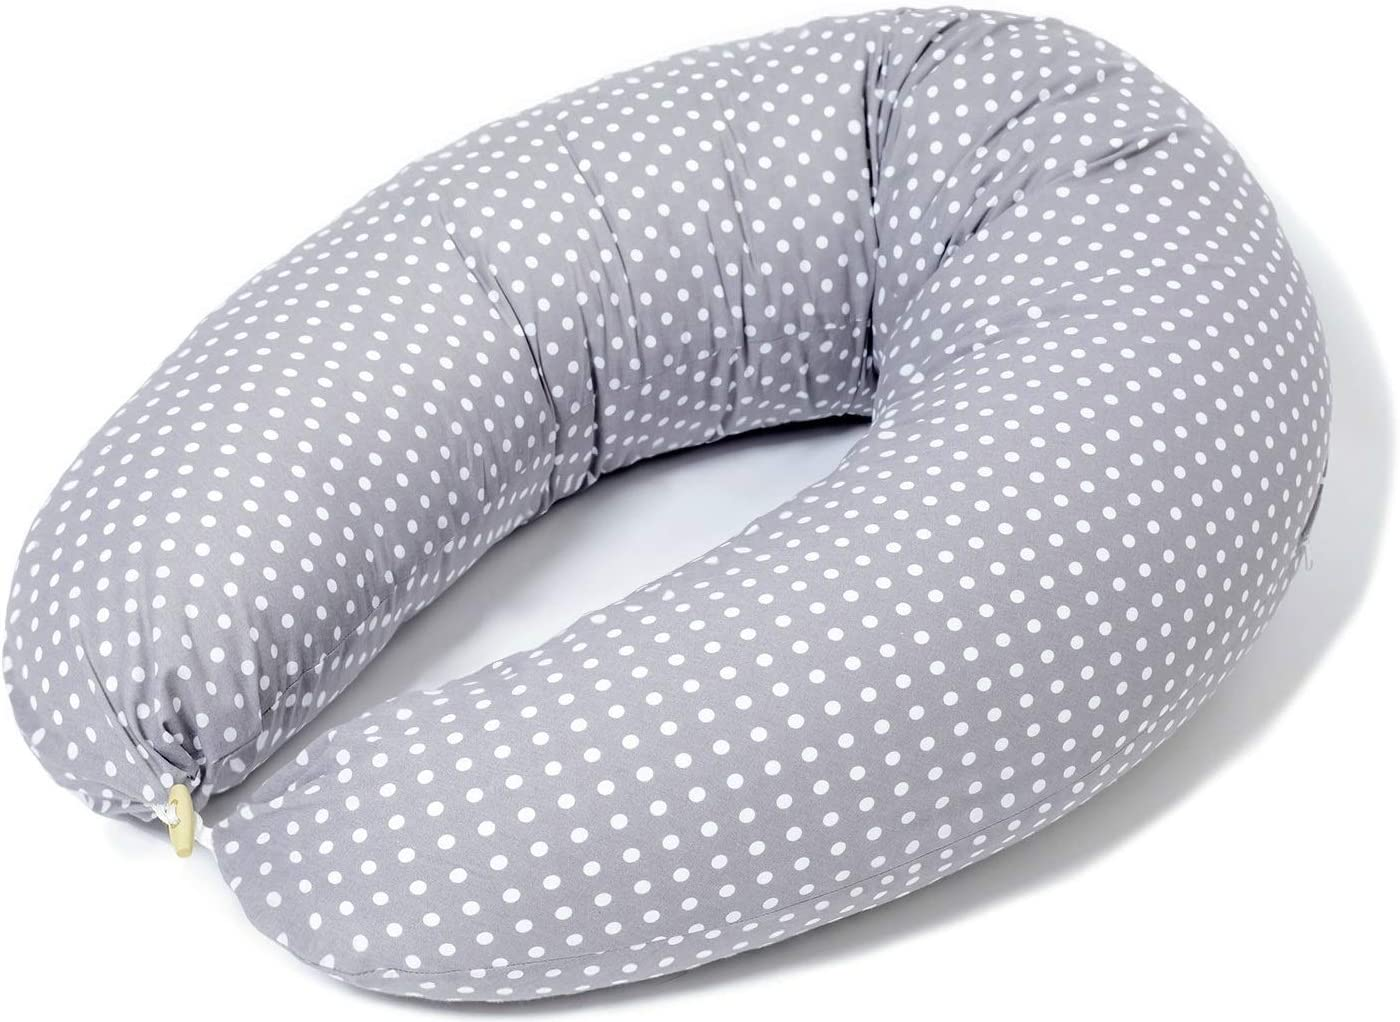 Niimo Pregnancy Pillow for Sleeping XXL